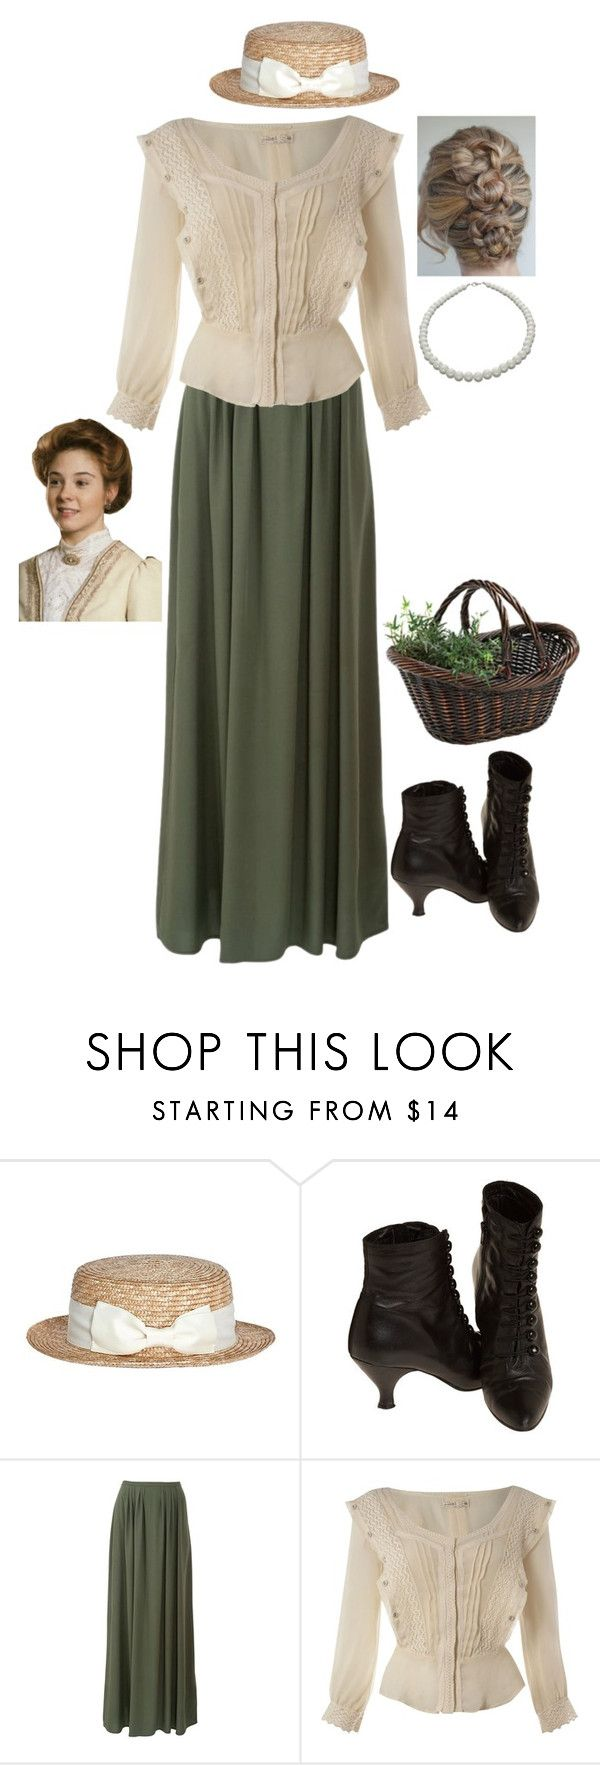 """DMA 15- Anne of Green Gables"" by ruthieue ❤ liked on Polyvore featuring Label Lab, NEXTE Jewelry, modern, women's clothing, women, female, woman, misses and juniors"